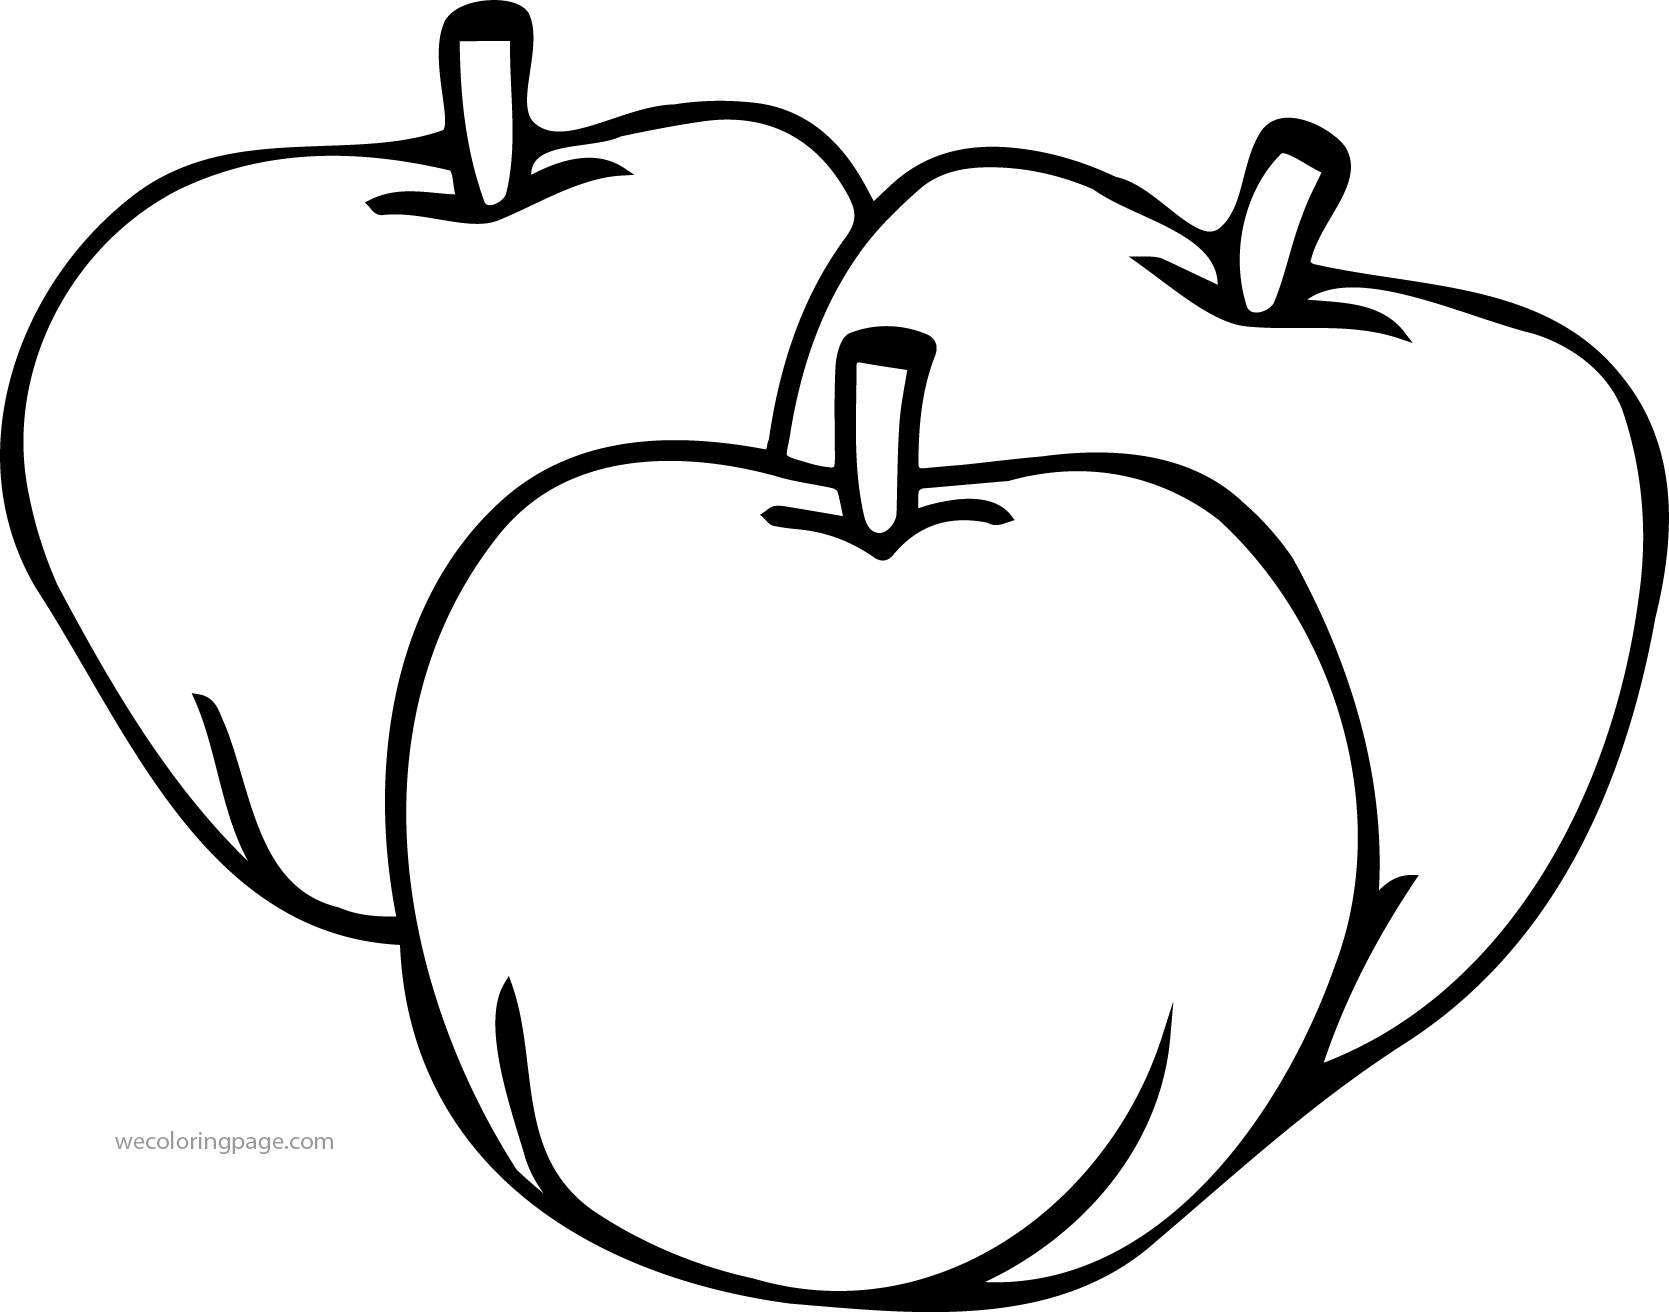 apple colouring images free printable apple coloring pages for kids cool2bkids colouring images apple